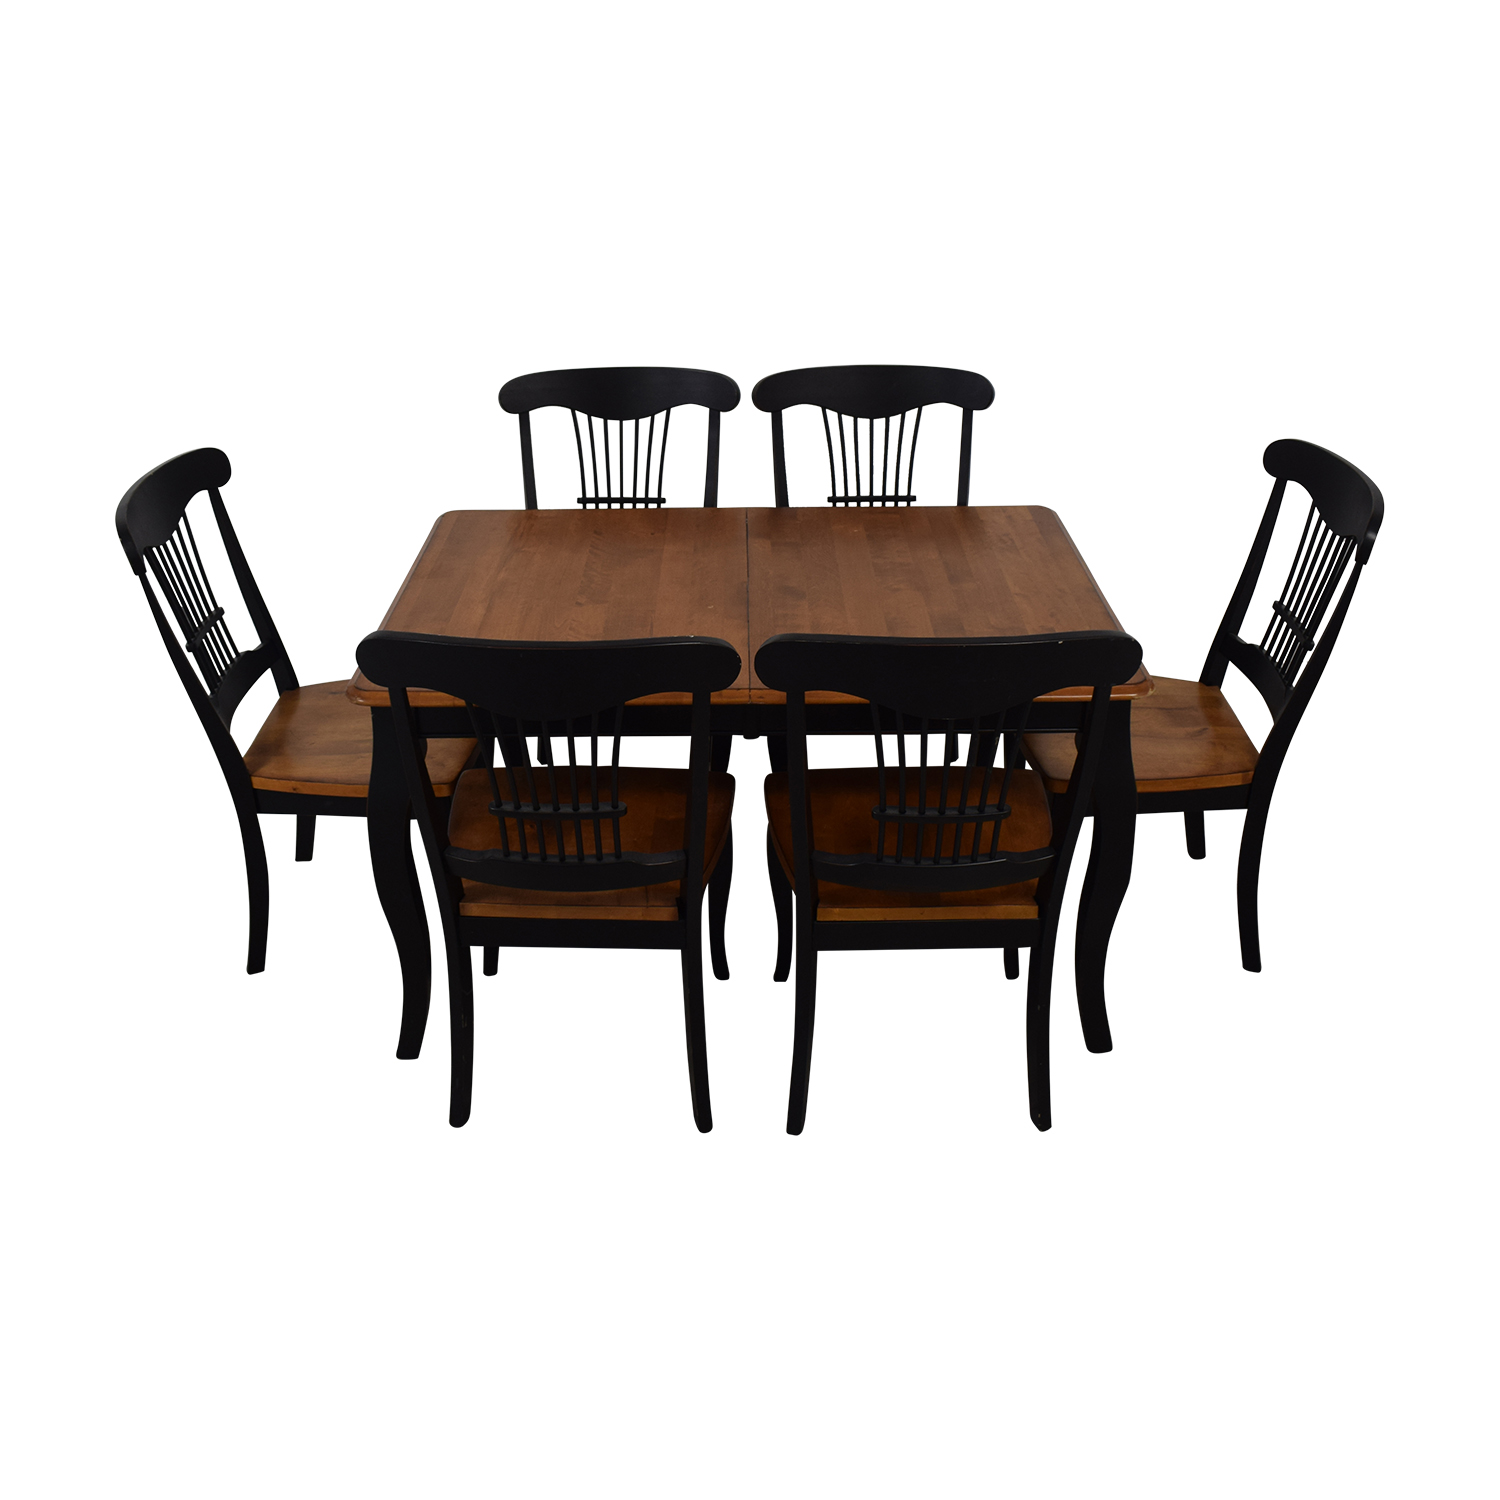 Raymour & Flanigan Dining Table and Chairs / Tables